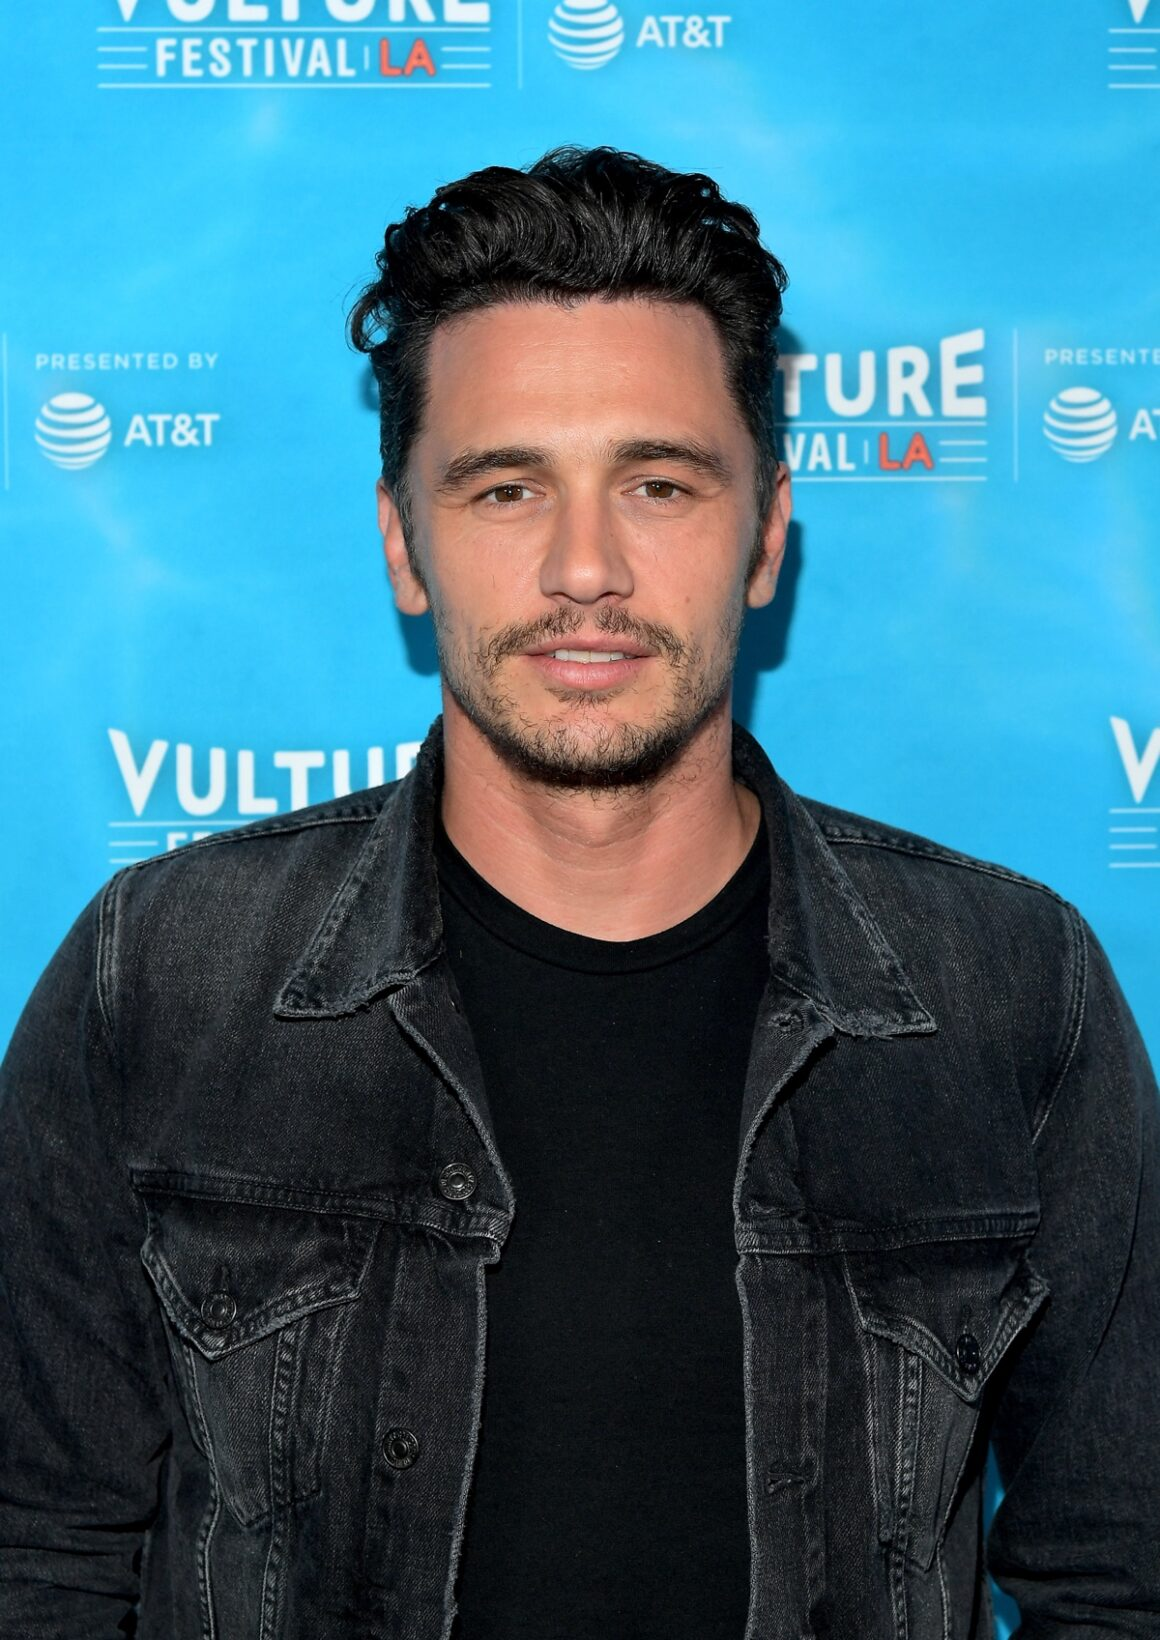 James Franco Vulture Festival LA Presented by AT&T - Day 1